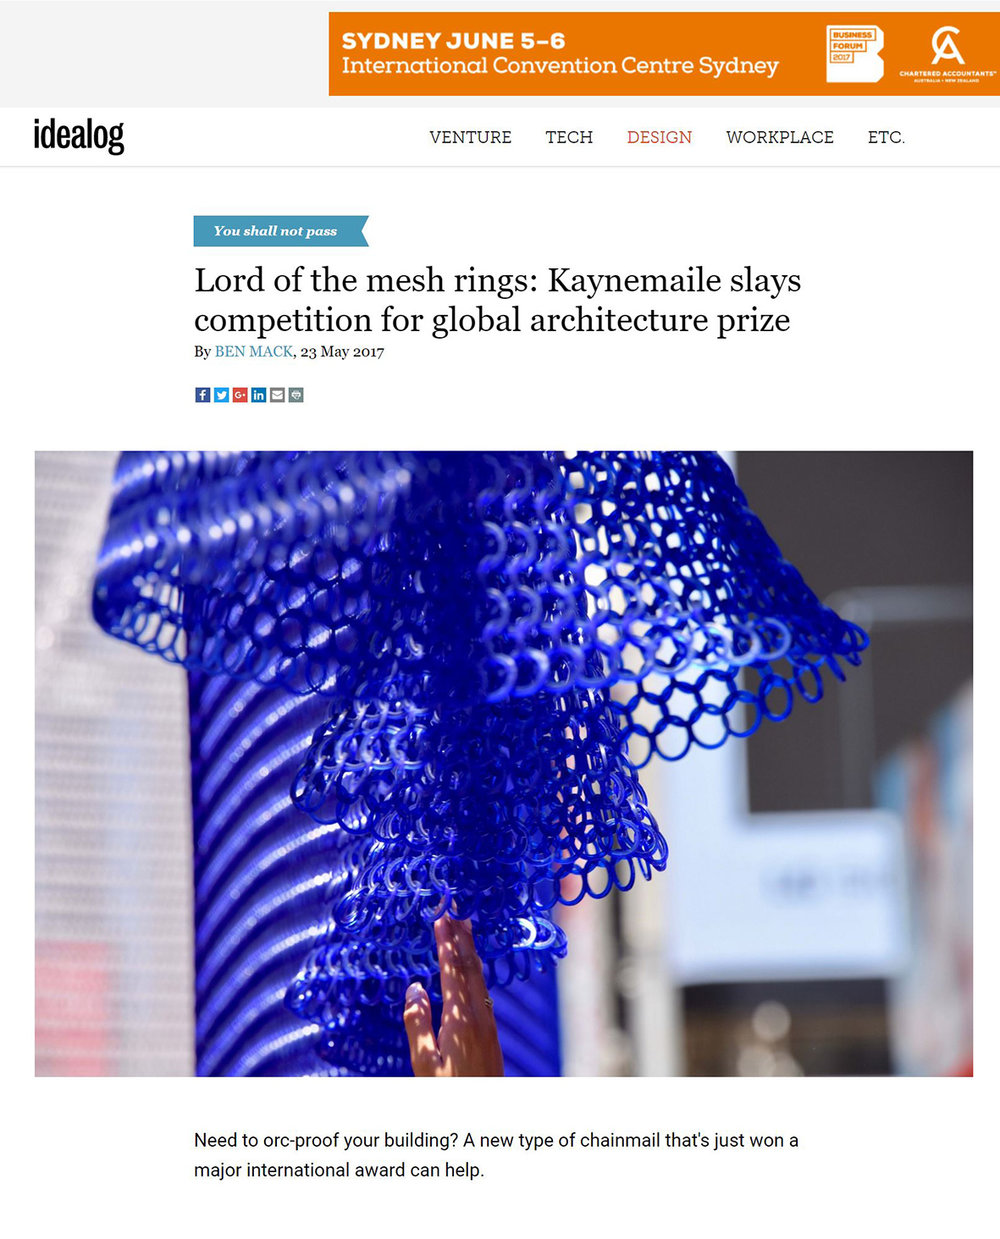 Lord of the mesh rings Kaynemaile slays competition for global architecture prize